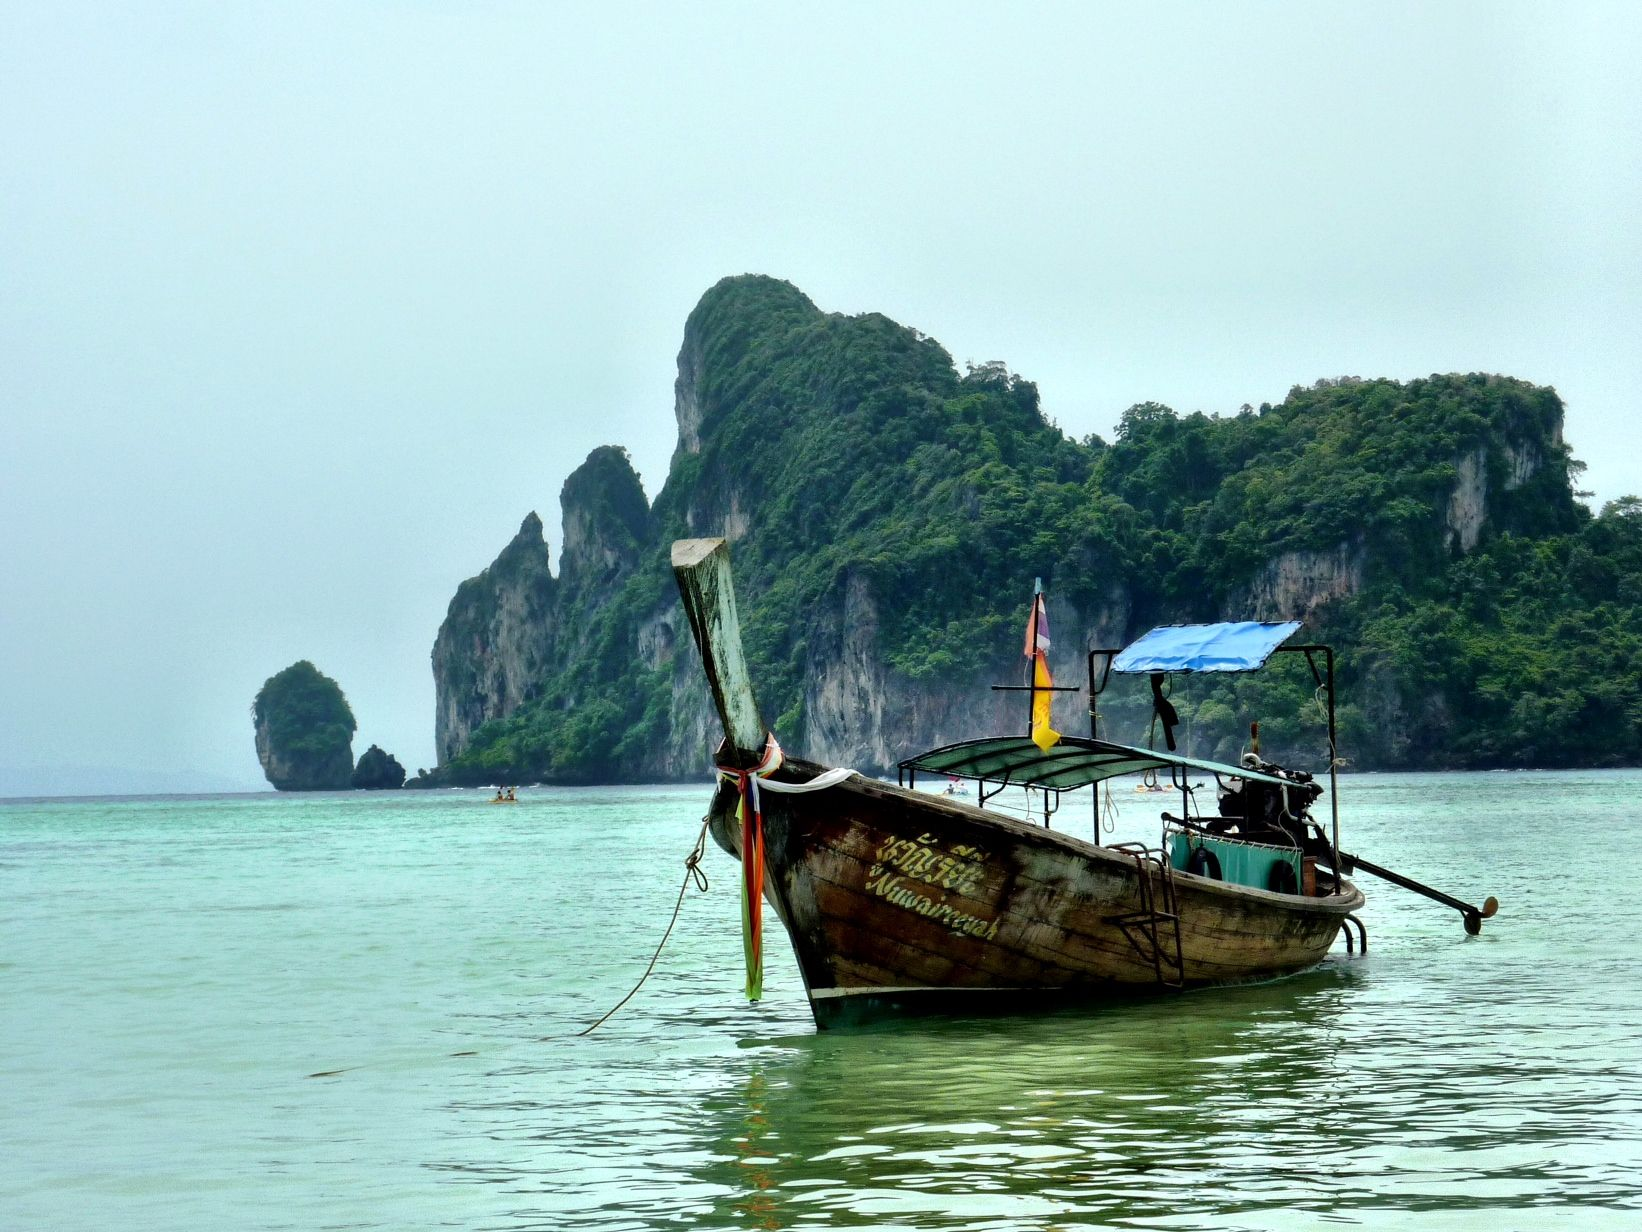 My passion is exploring the world. This is Koh Phi Phi